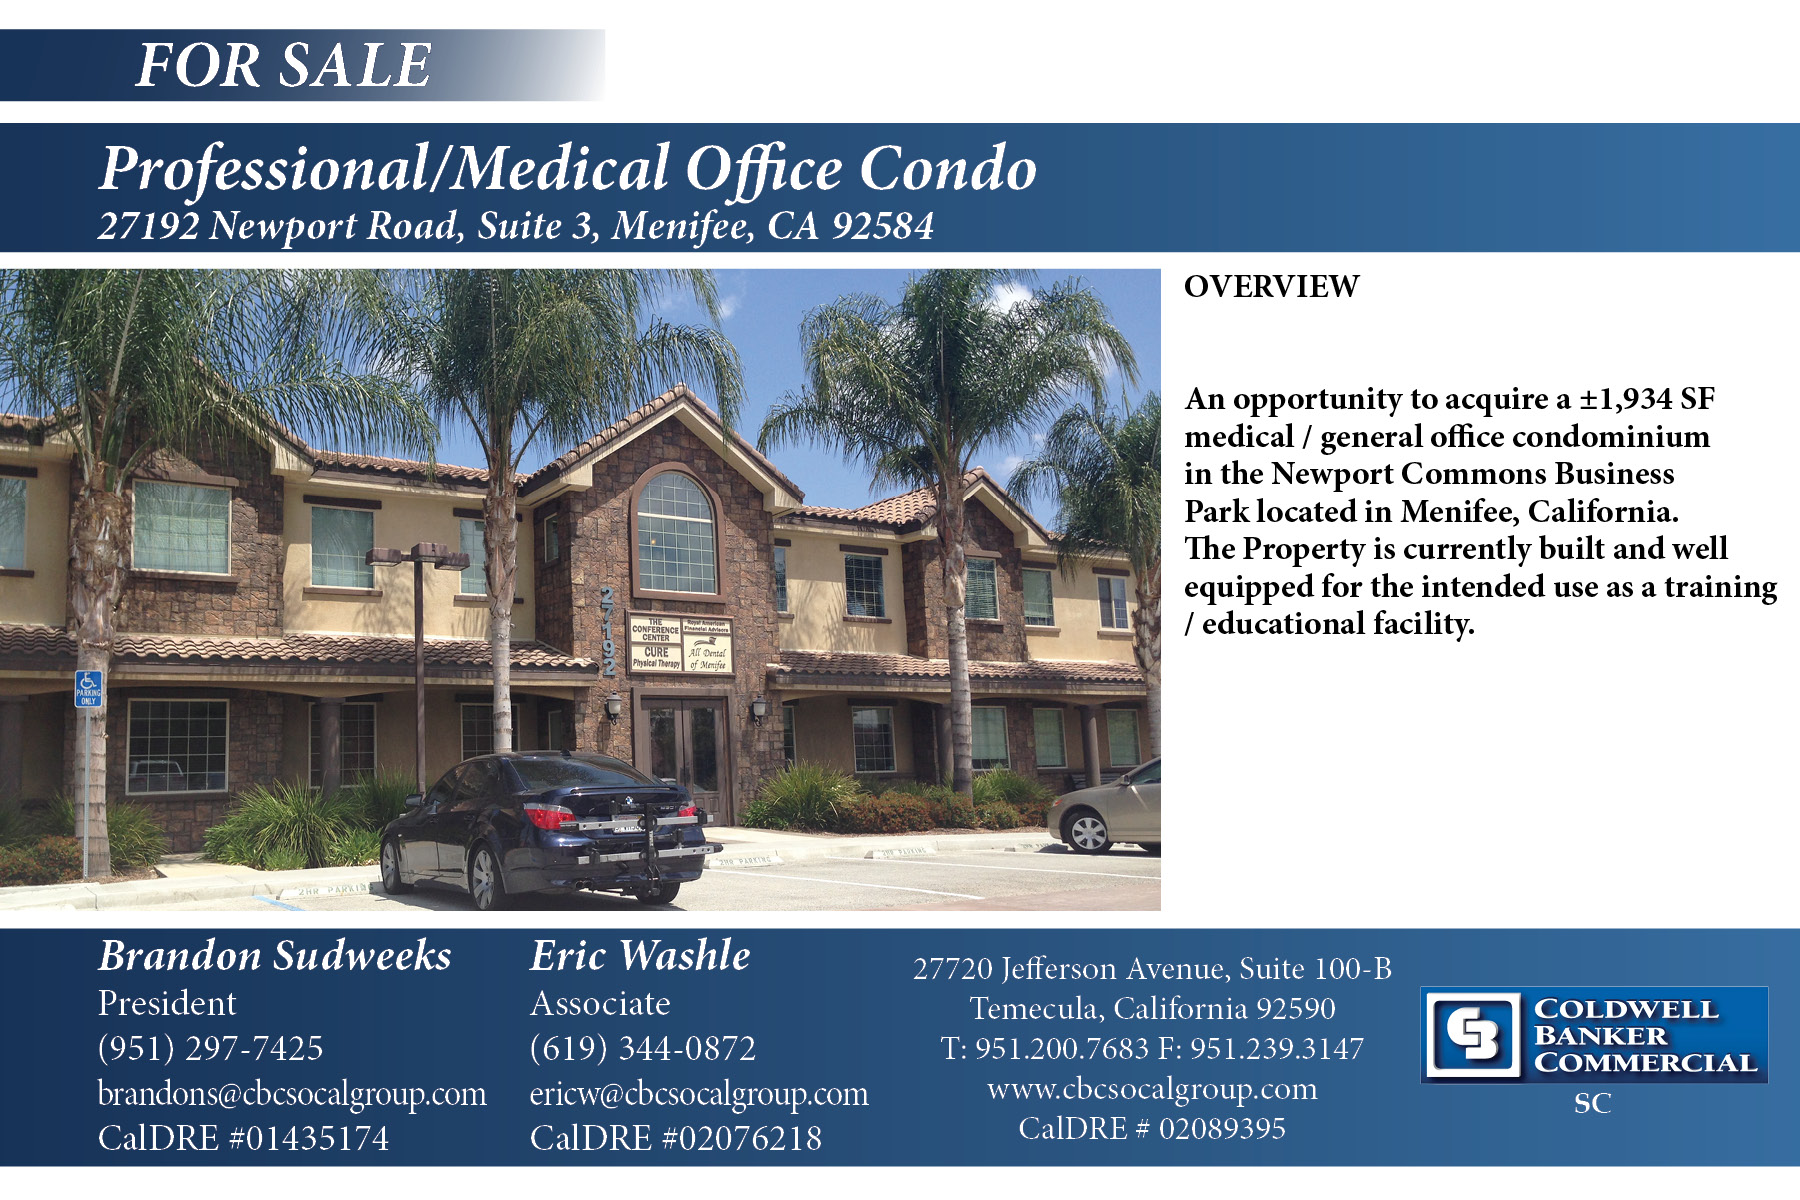 FOR SALE! ±1,934 SF Professional/Medical Office Condo in Menifee